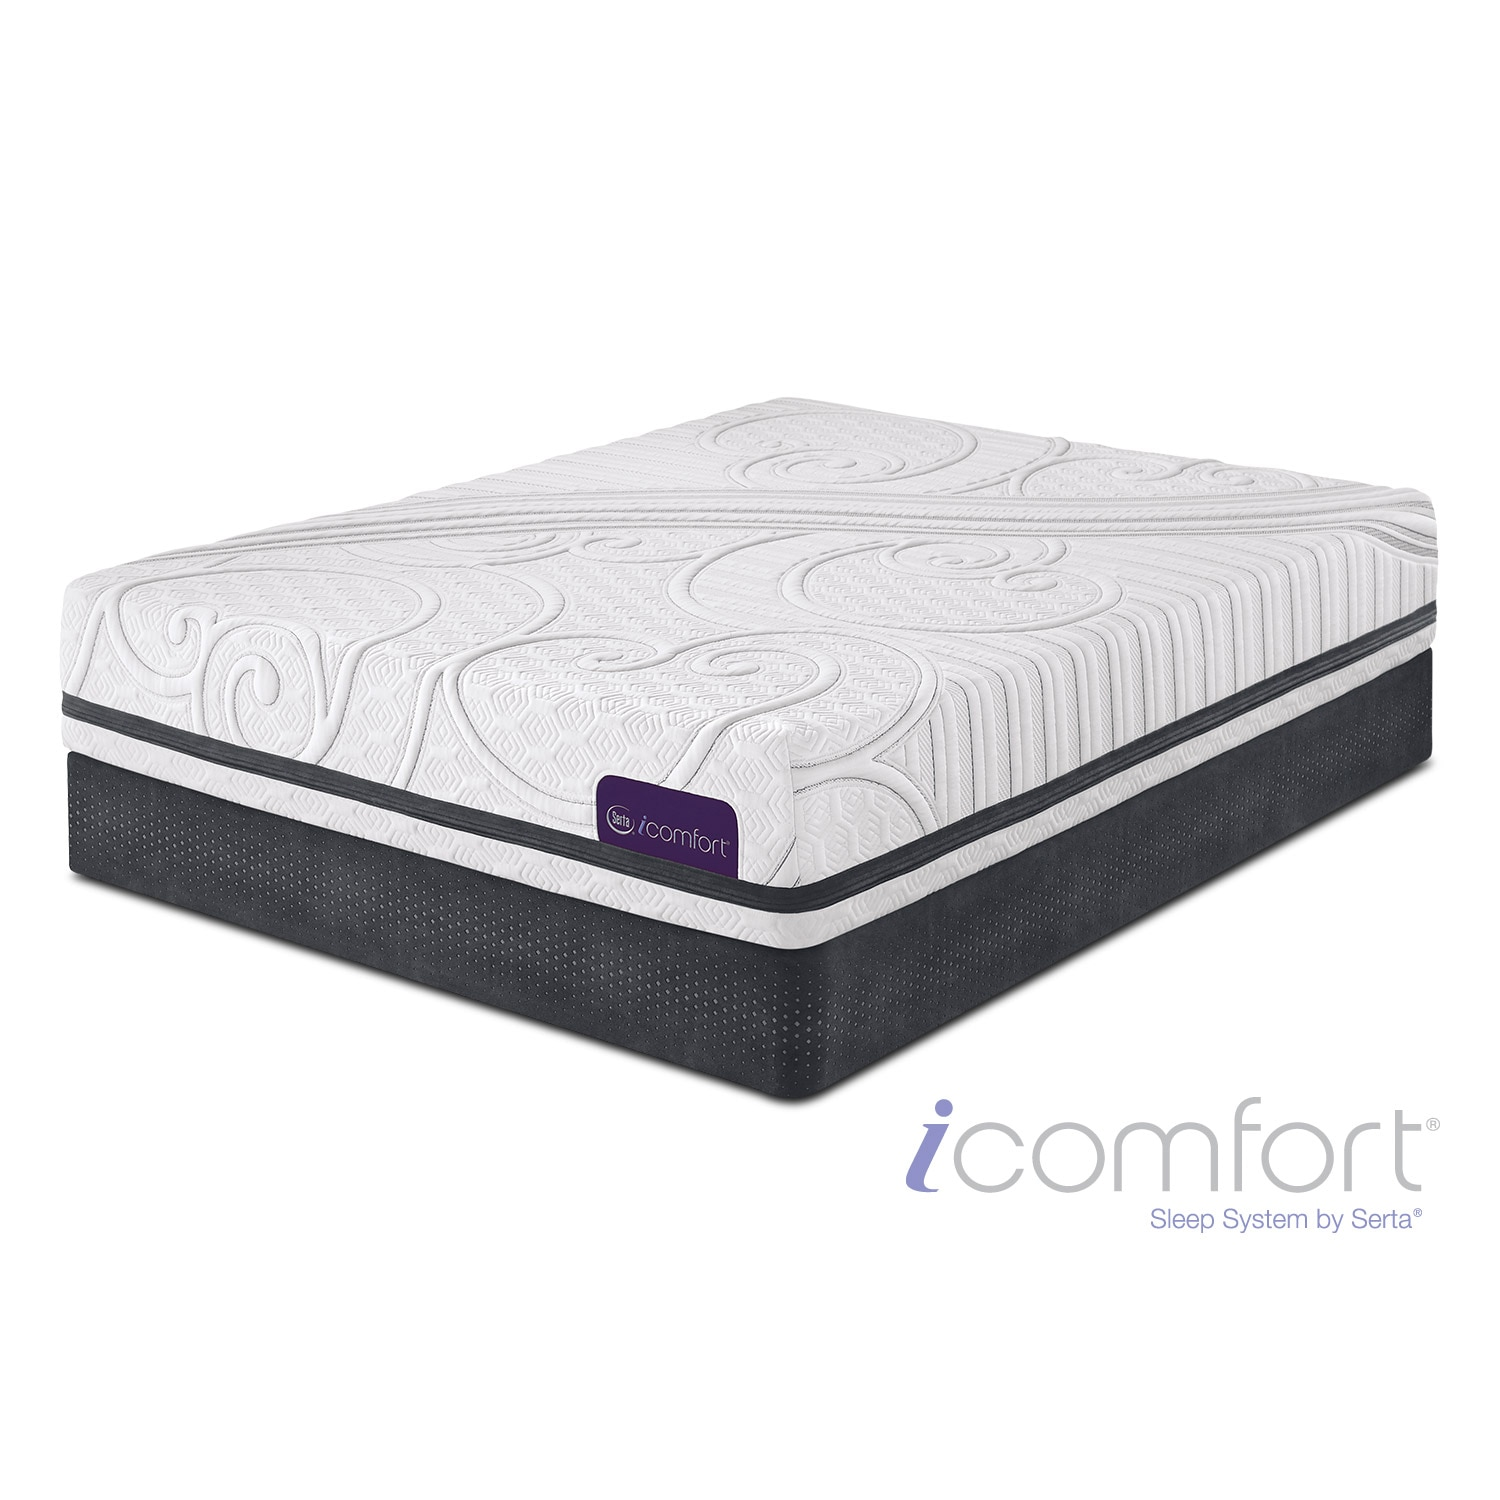 Mattresses and Bedding - Savant III Firm Twin XL Mattress/Foundation Set